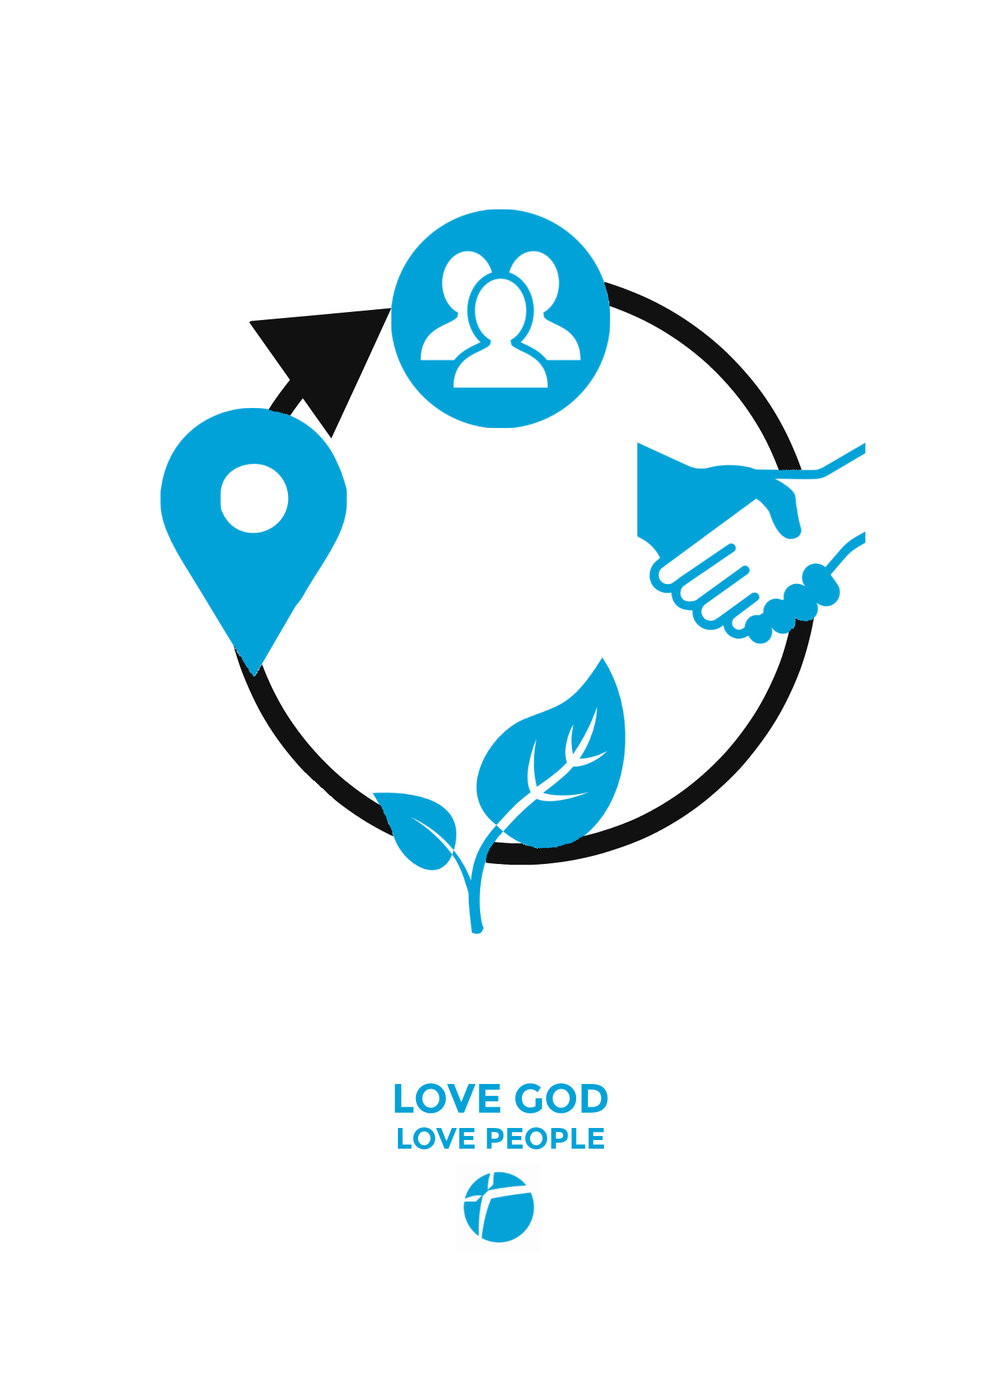 "OUR CORE VALUES - Found People Find PeopleYou Can't Do Life AloneSaved People Serve PeopleGrowing People Change Jesus replied: ""Love the Lord your God with all your heart and with all your soul and with all your mind. This is the first and greatest commandment. And the second is like it: Love your neighbor as yourself."